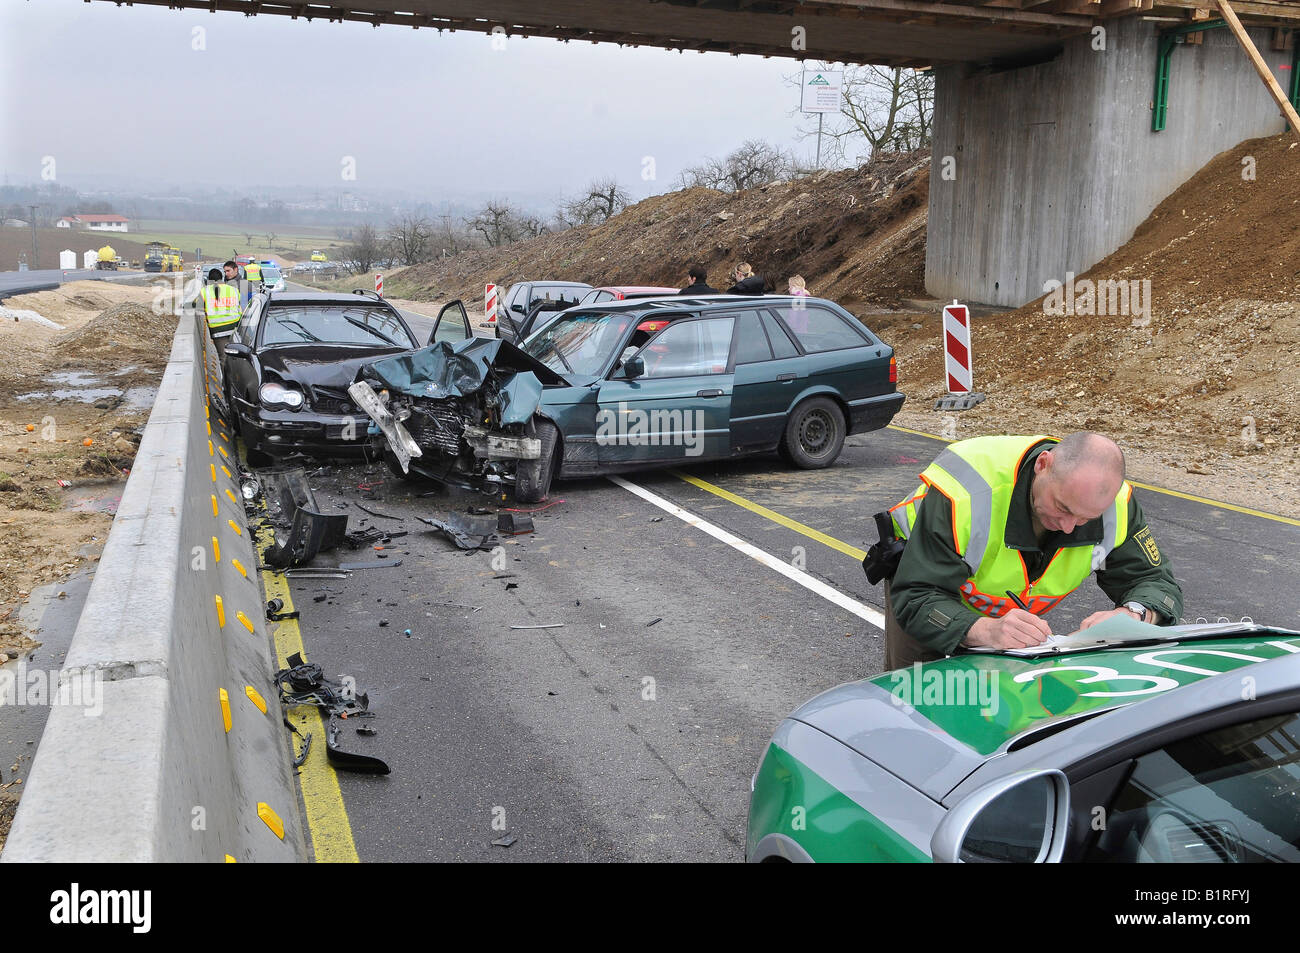 Police officer during the acquisition of accident data of a car accident, Nuertingen, Esslingen Region, Baden-Wuerttemberg, - Stock Image